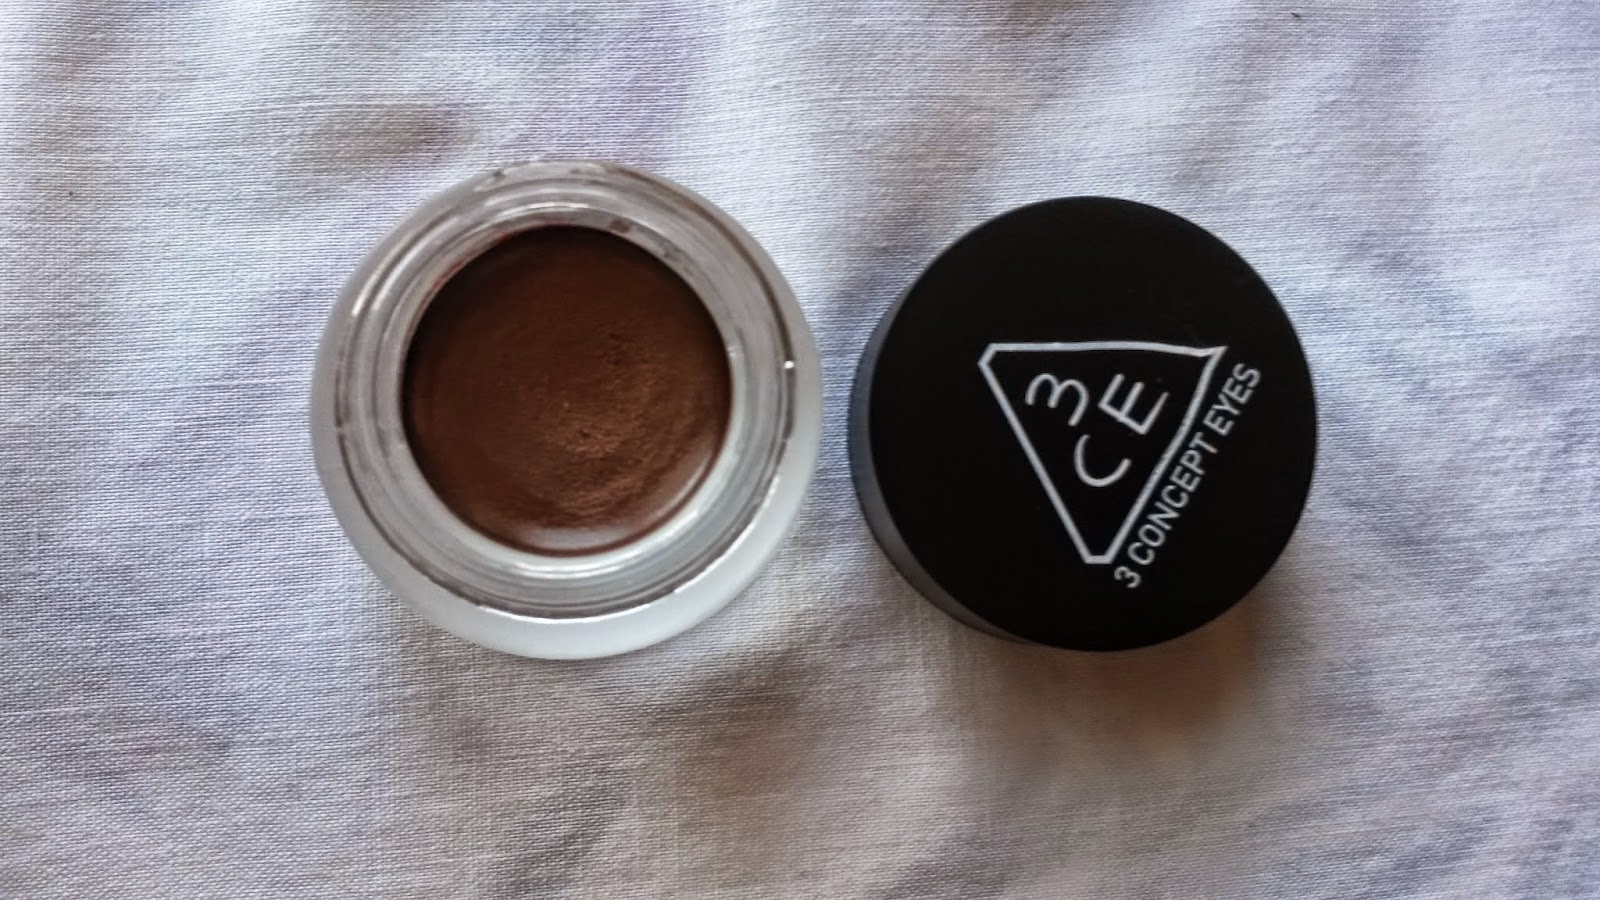 ke-mat-3ce-makeup-glam-cream-shadow-glamorous-04